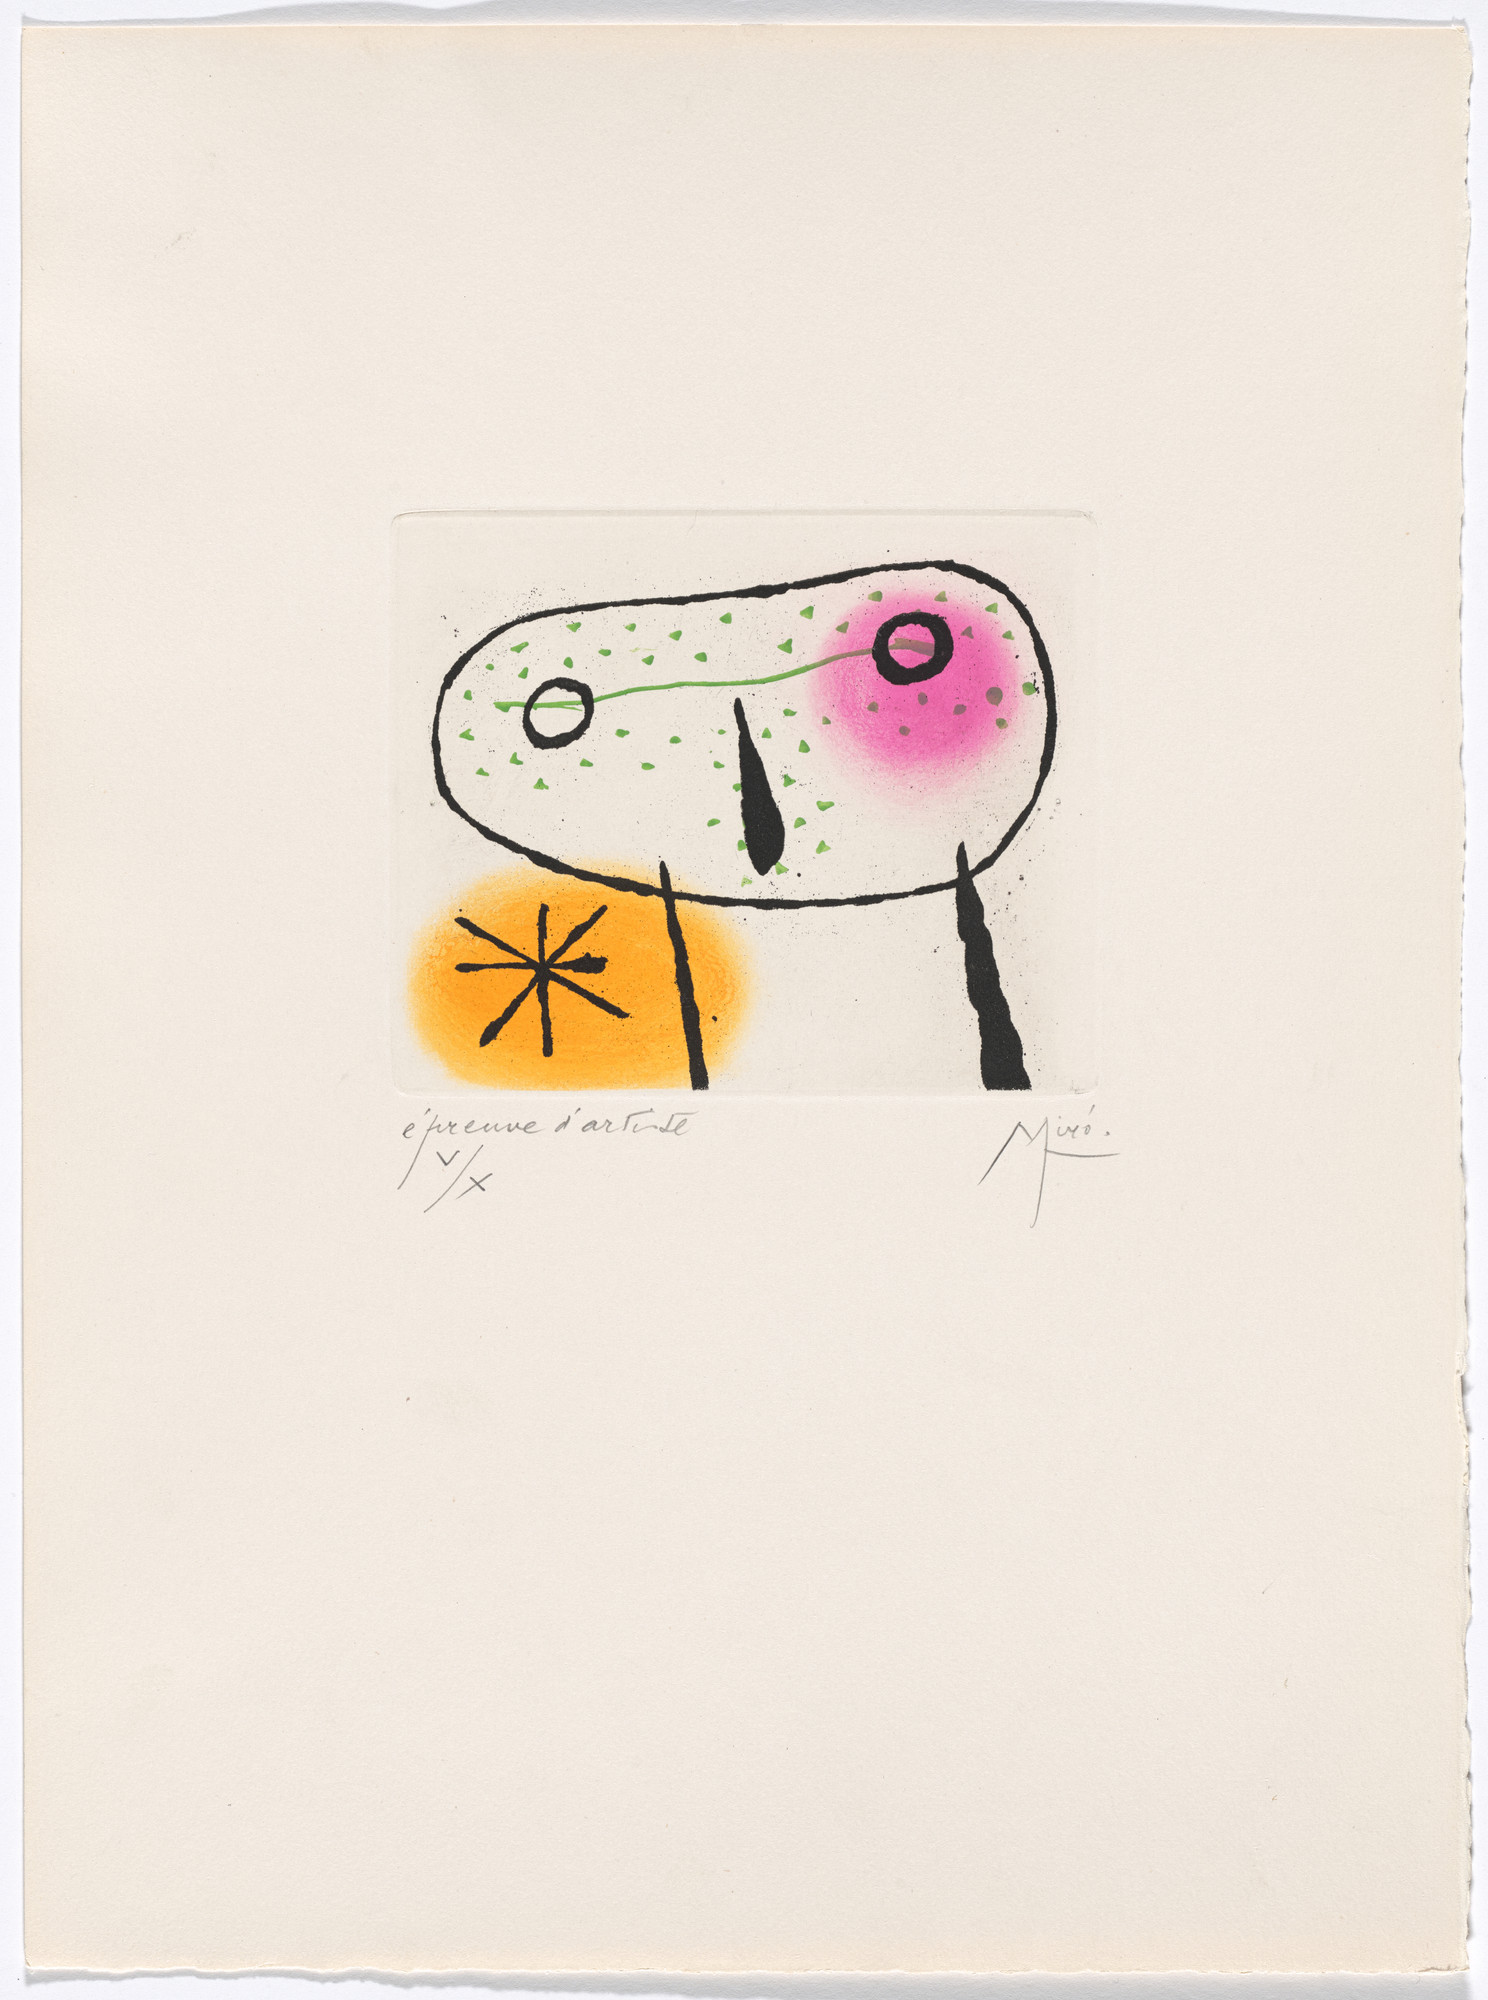 Joan Miró. Plate X from The Ring of Dawn Suite (Suite la bague d'aurore). 1957